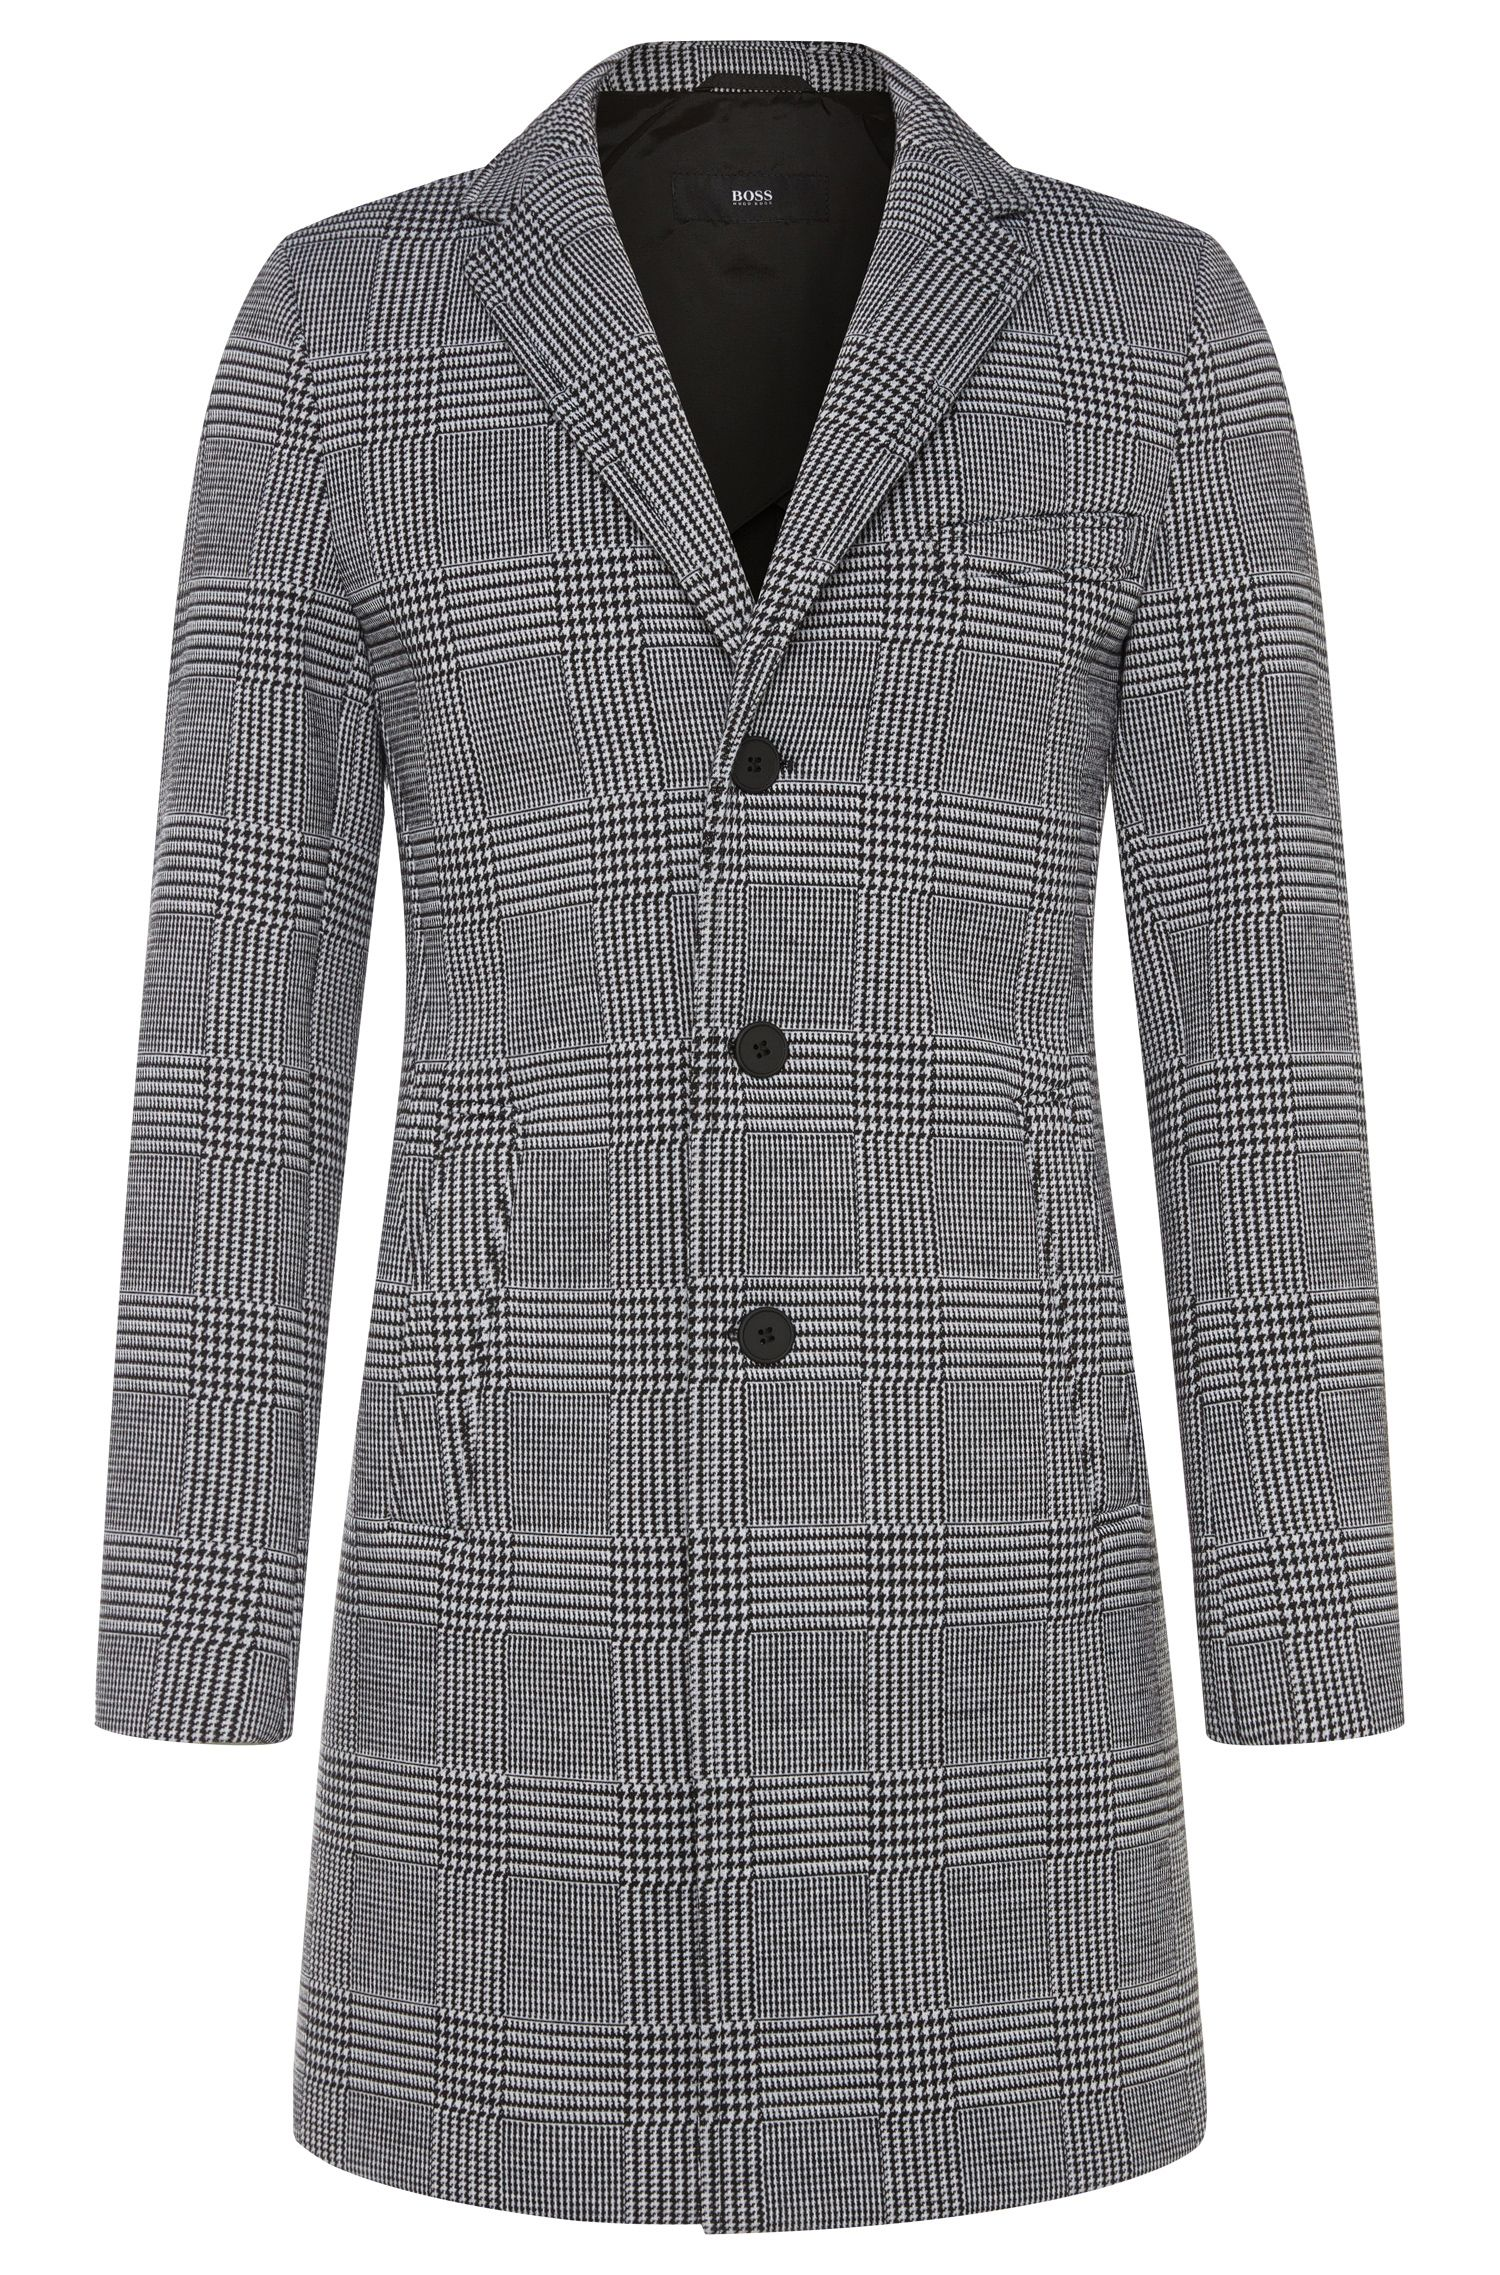 'Shawn' | Stretch Virgin Wool Neoprene Glen Plaid Car Coat